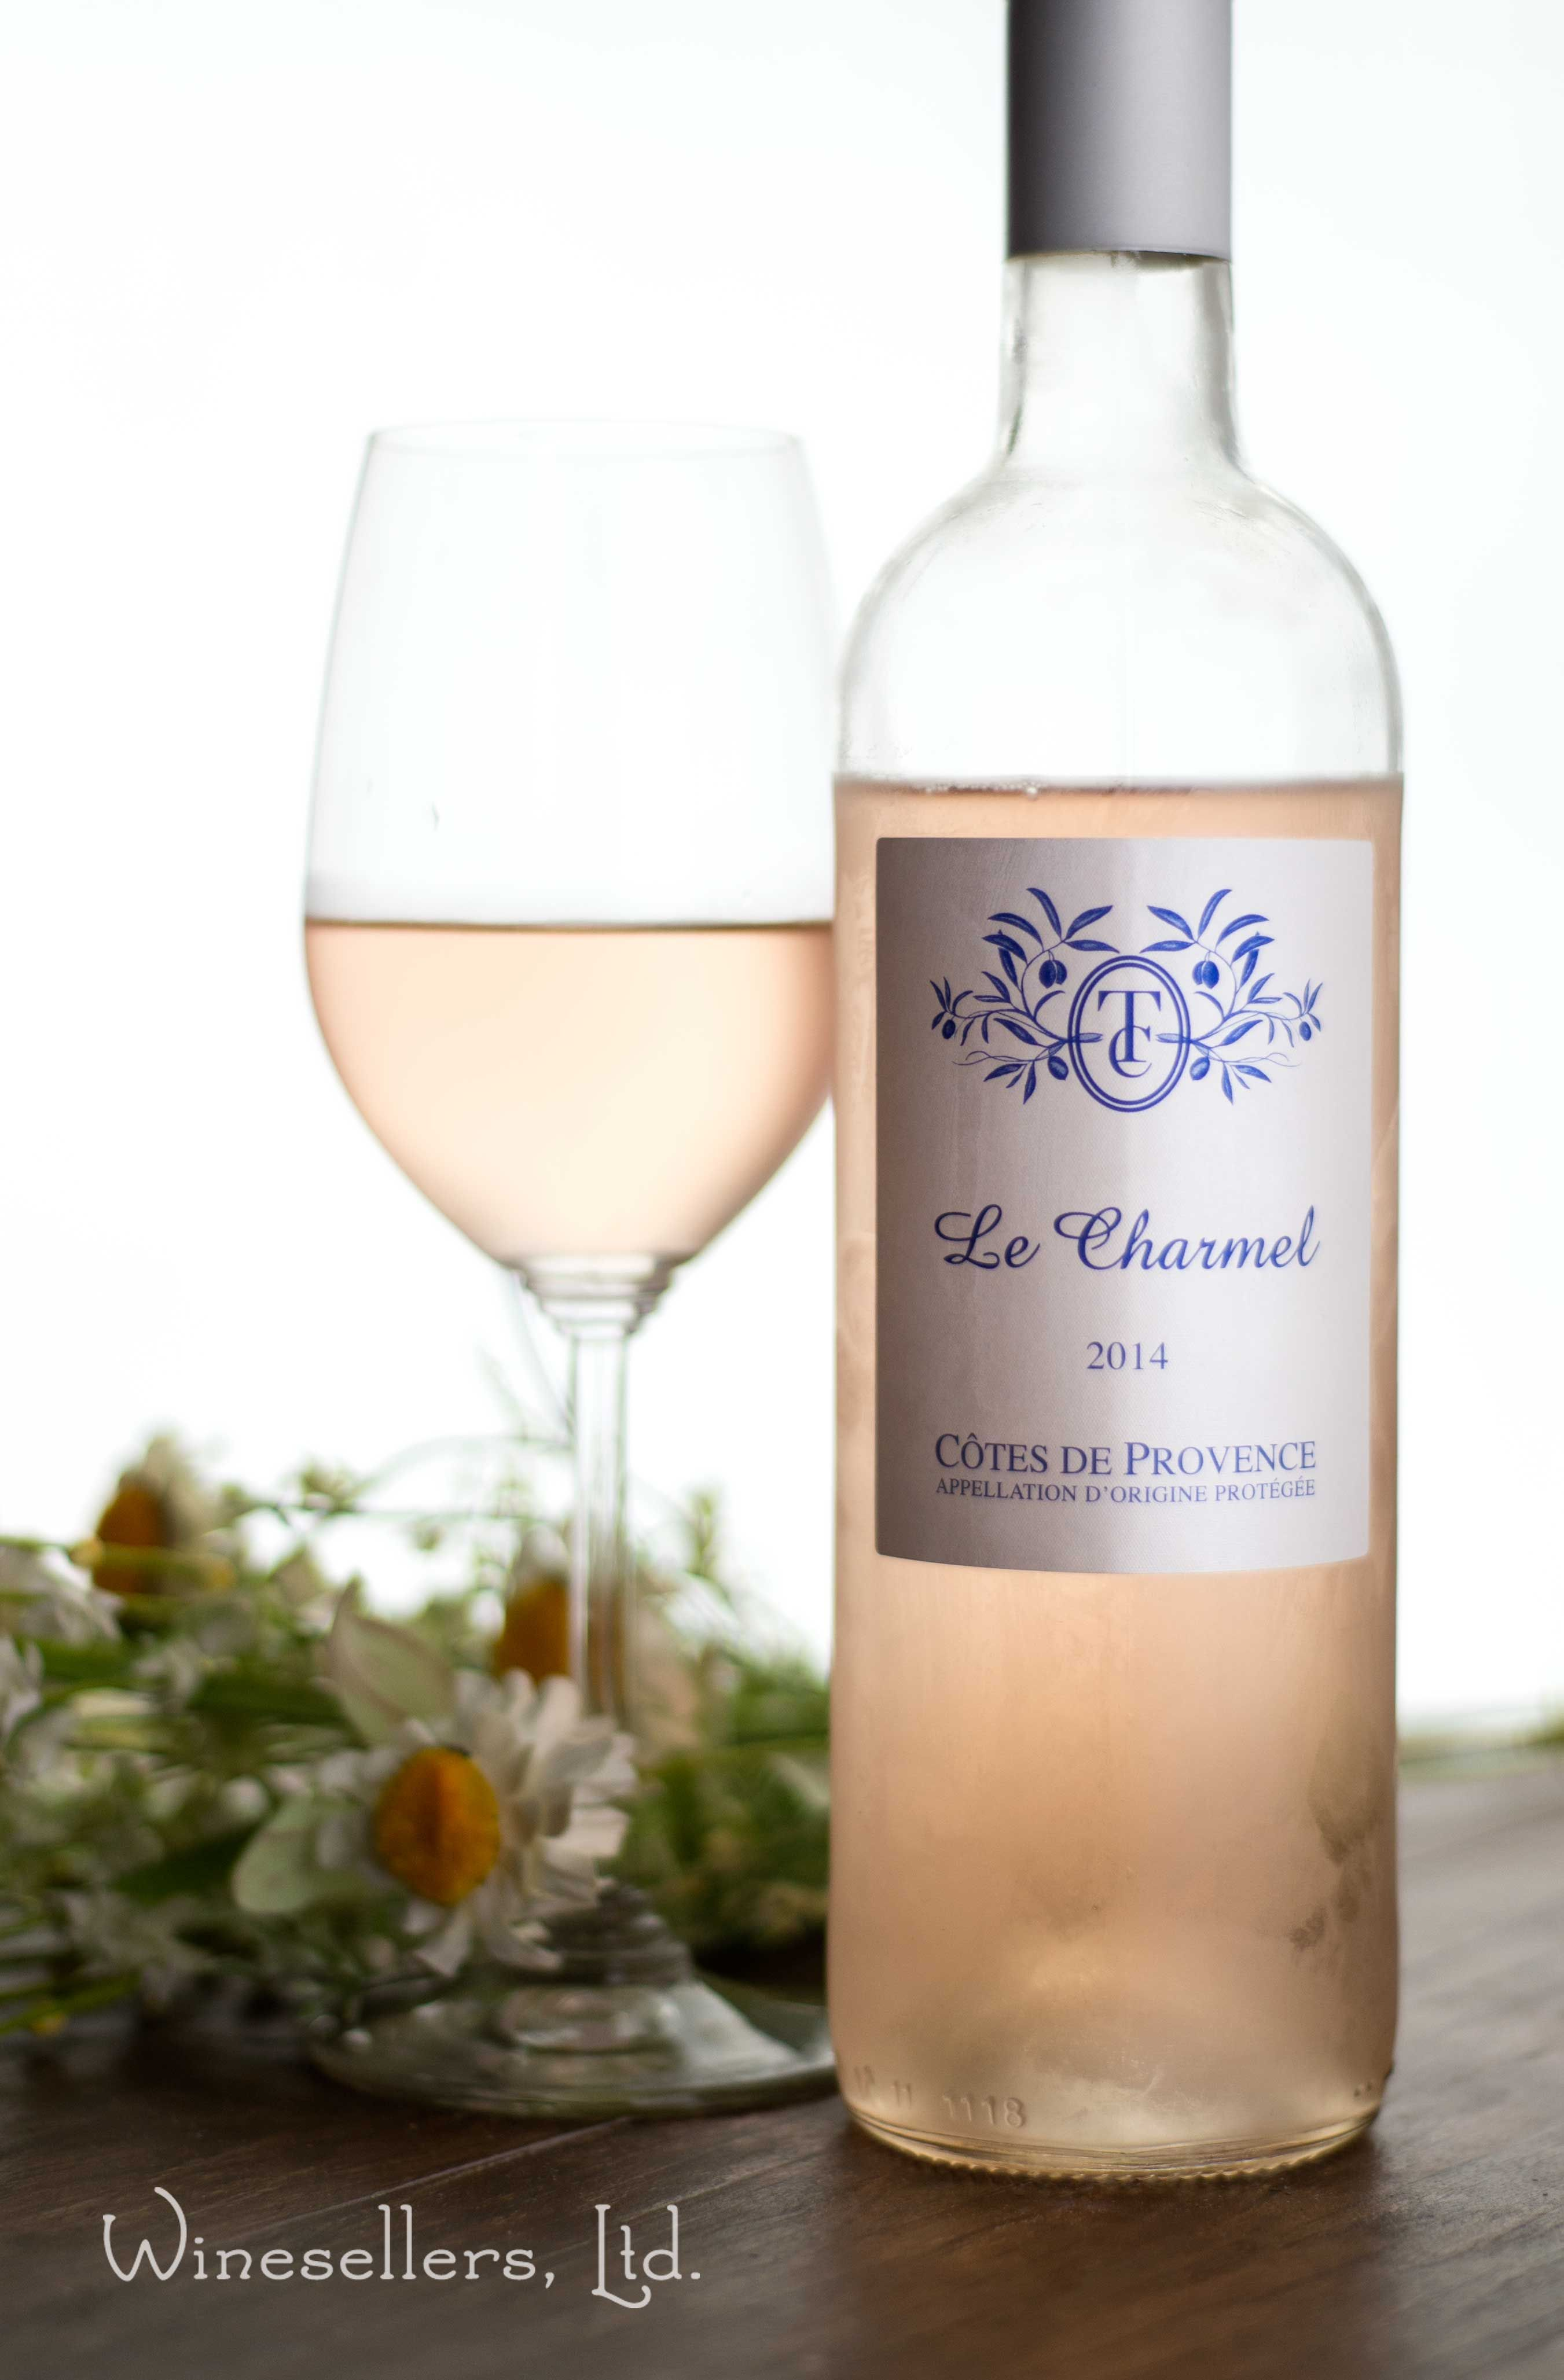 Le Charmel Rose, Cotes de Provence  90 Best Buy Wine & Spirits,  Le Charmel is a new line of wines, a collaboration between Charles Master and his father, longtime Tortoise Creek proprietor Mel Master. Working with vineyards around Bandol, blending equal parts syrah and cinsault with mourvedre, grenache and rolle, they've come up with a wine that feels as fresh as a sea breeze, complete with the saline savor. The fruit is round and crisp, white cherry flavors held taut by acidity.